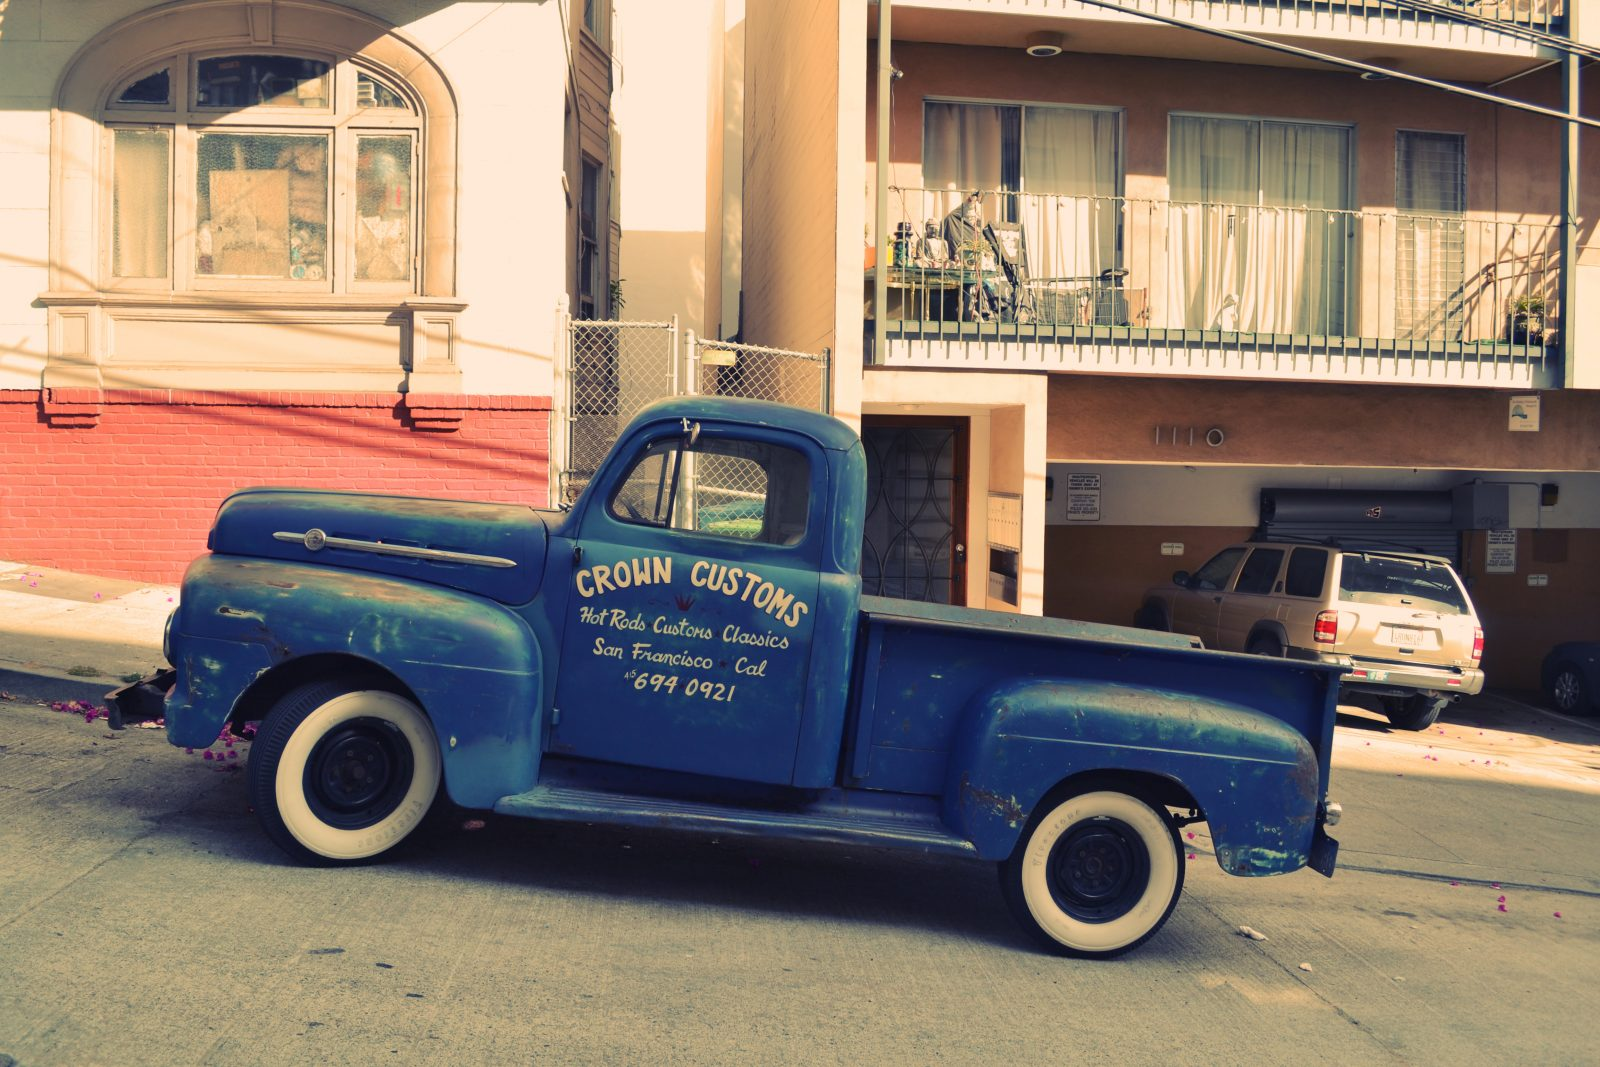 American Trucks For Sale Uk >> Old Truck - Free Stock Photos | Life of Pix